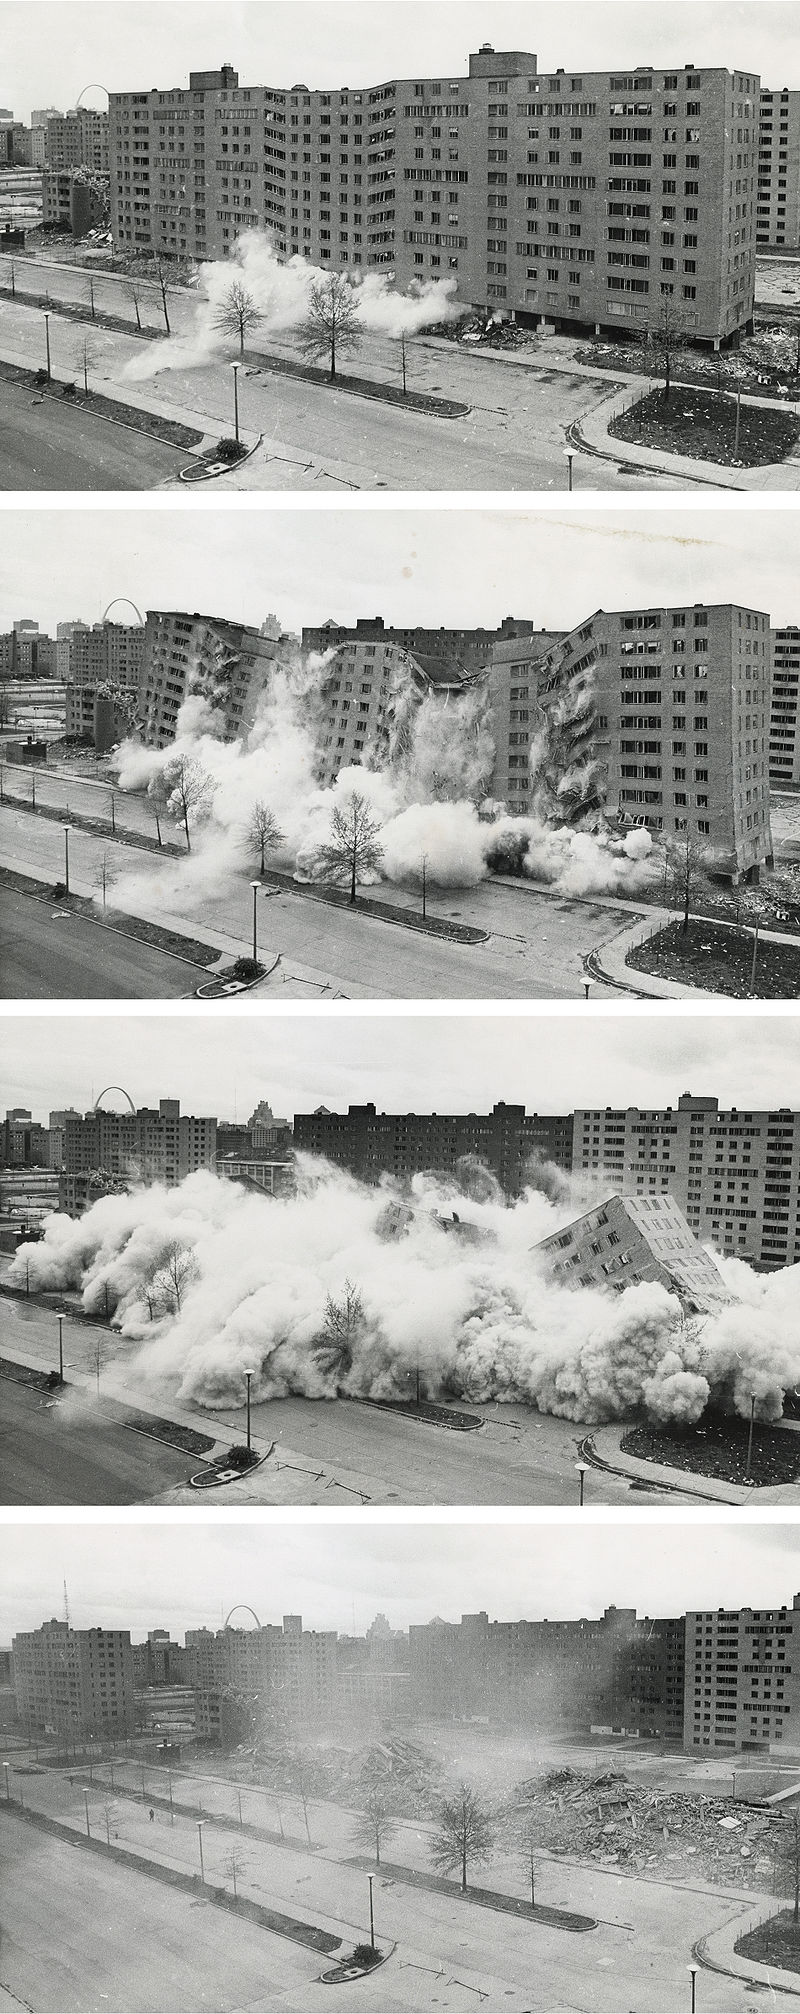 800px-Pruitt-igoe_collapse-series _ public domain.jpg